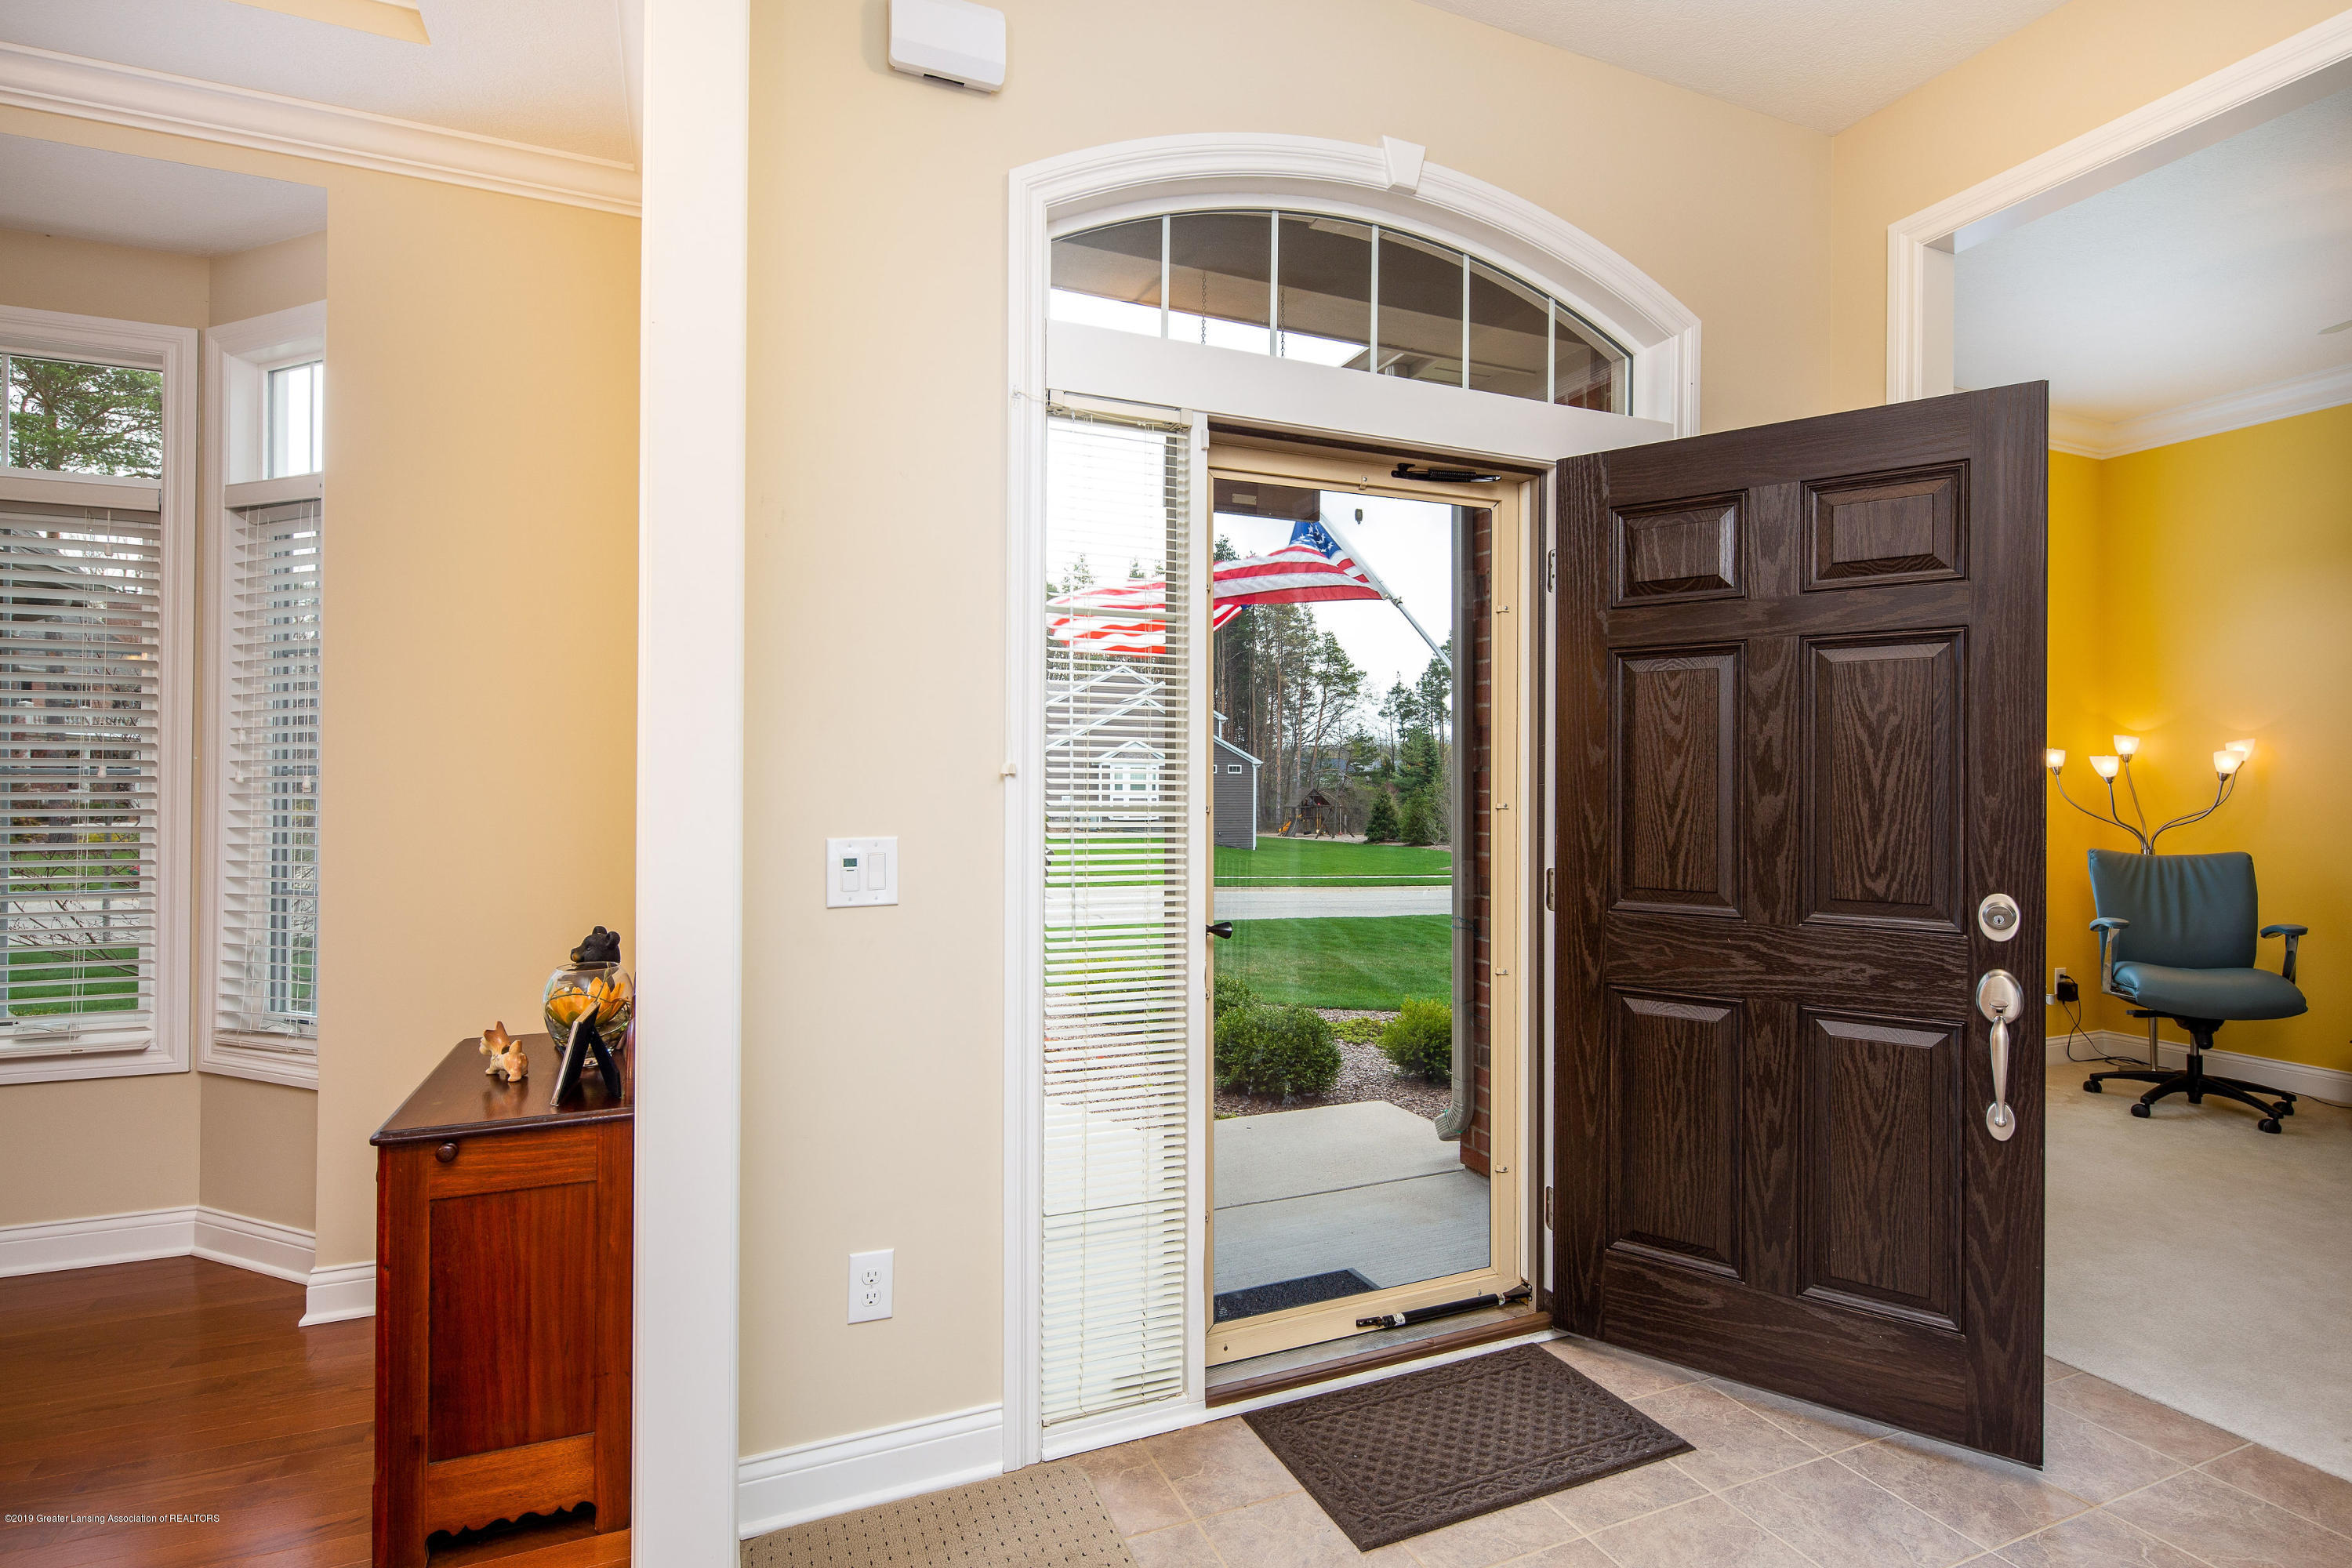 6257 Mereford Ct - 20190426-942A2765-Edit - 3